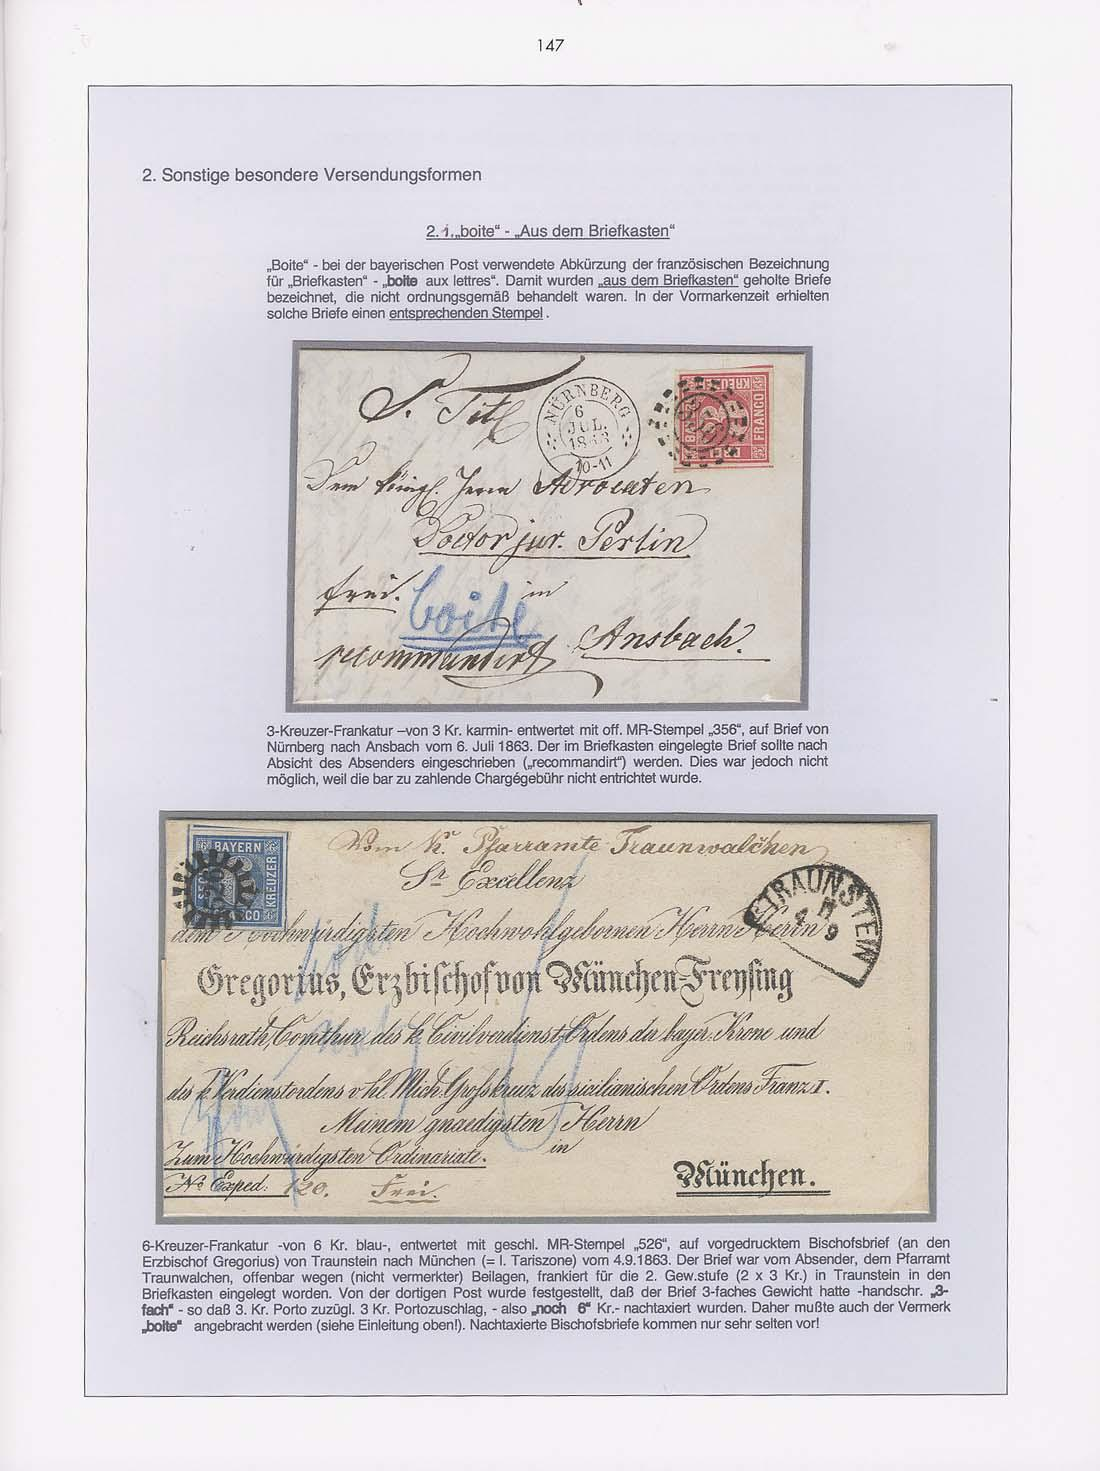 Vol. 17: Bavaria - Square Stamps Letter Mail • The Walter Hussnätter Collection